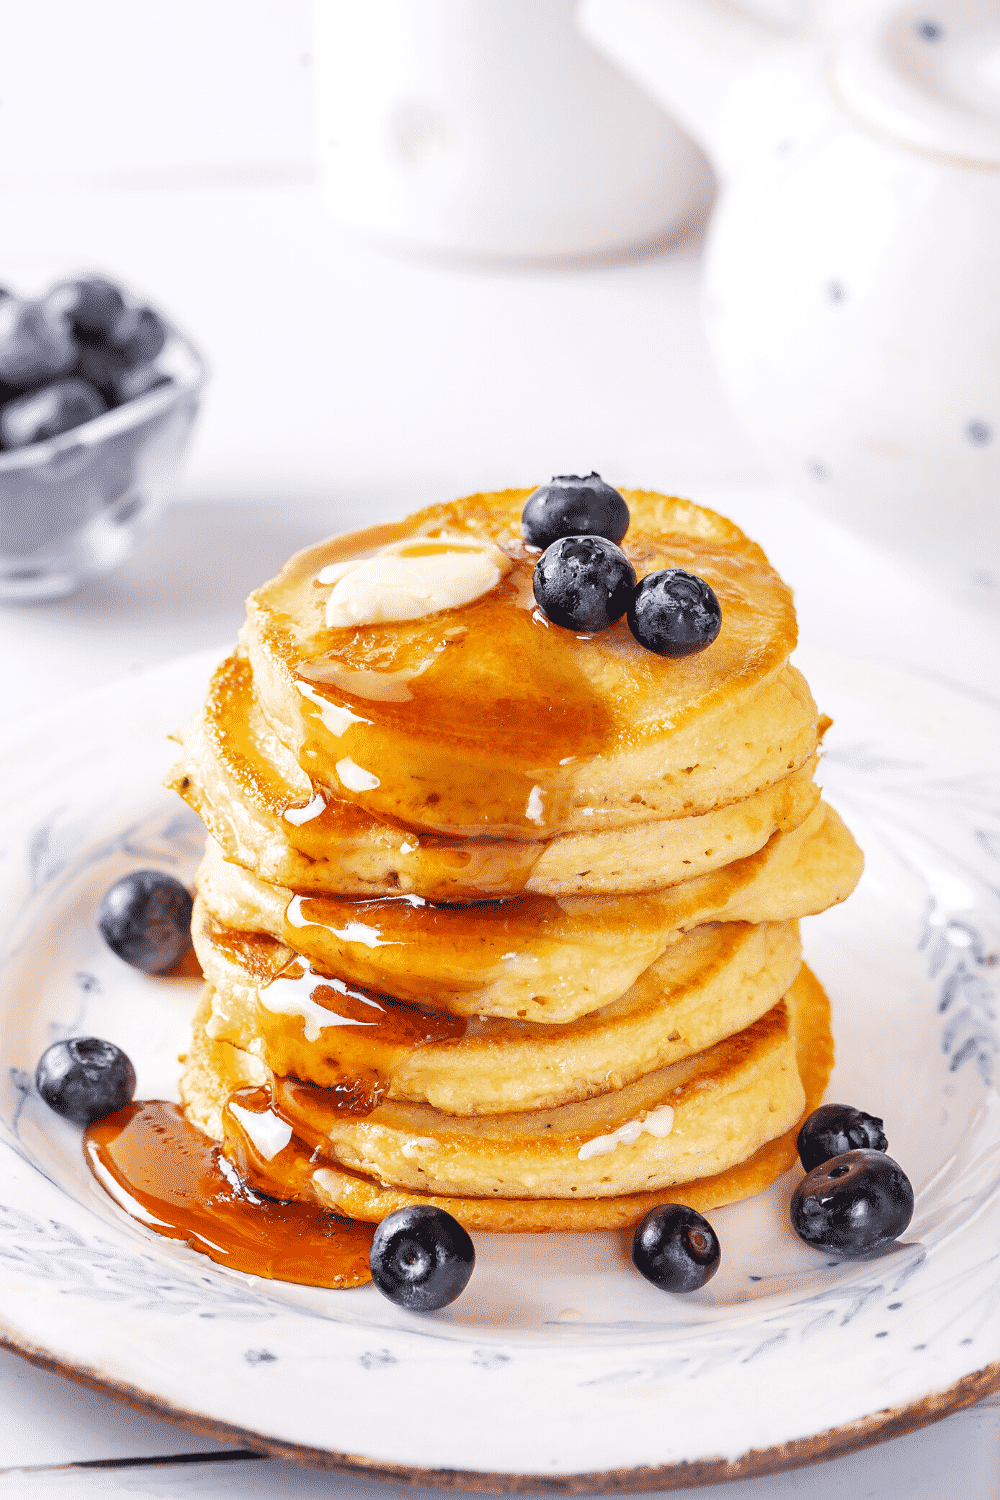 A stack of pancakes on a plate with syrup running down the front side of the stack